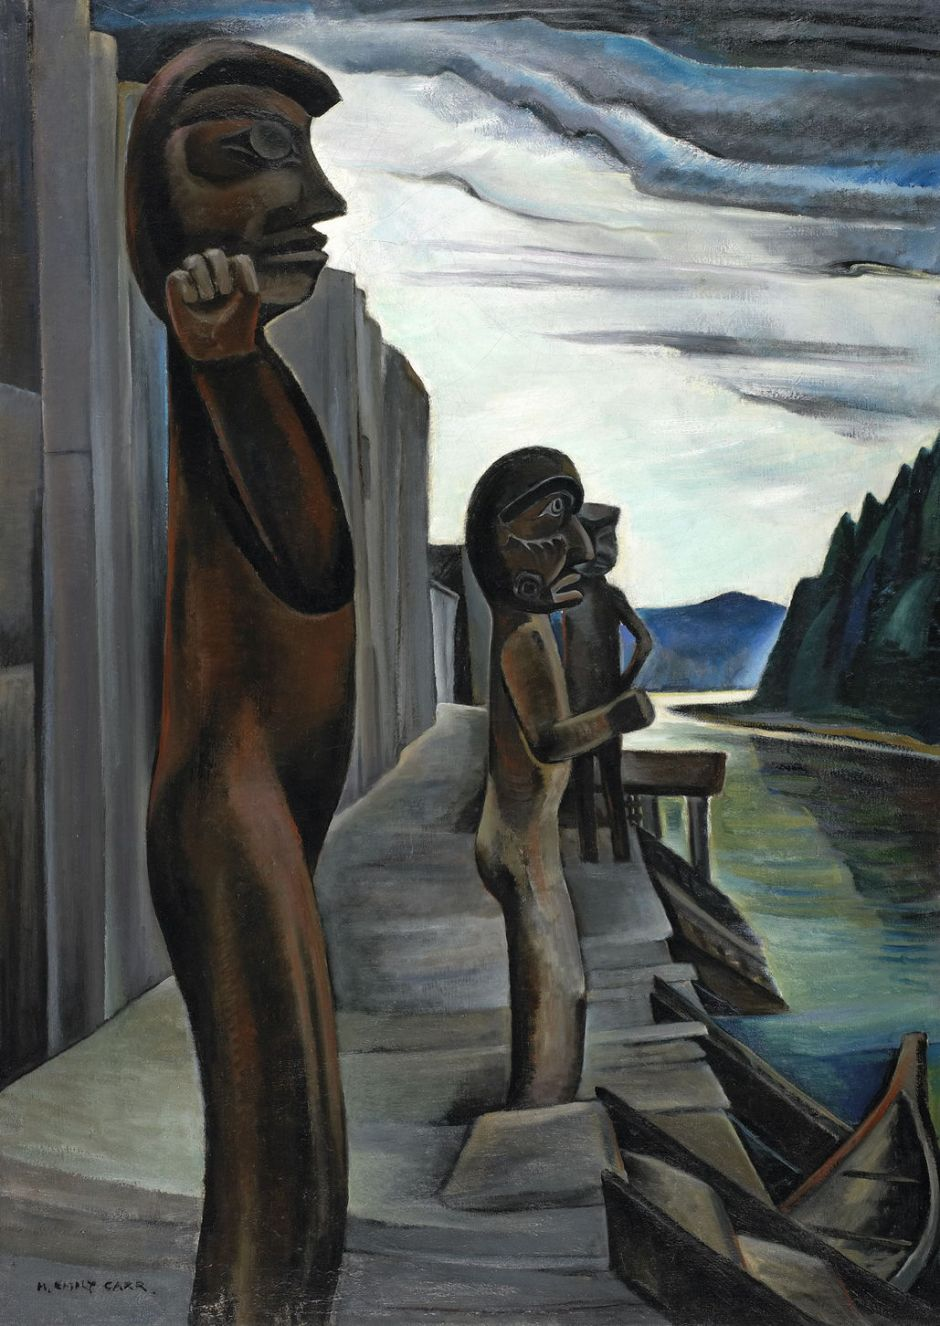 carrblundenharbourtotems1930